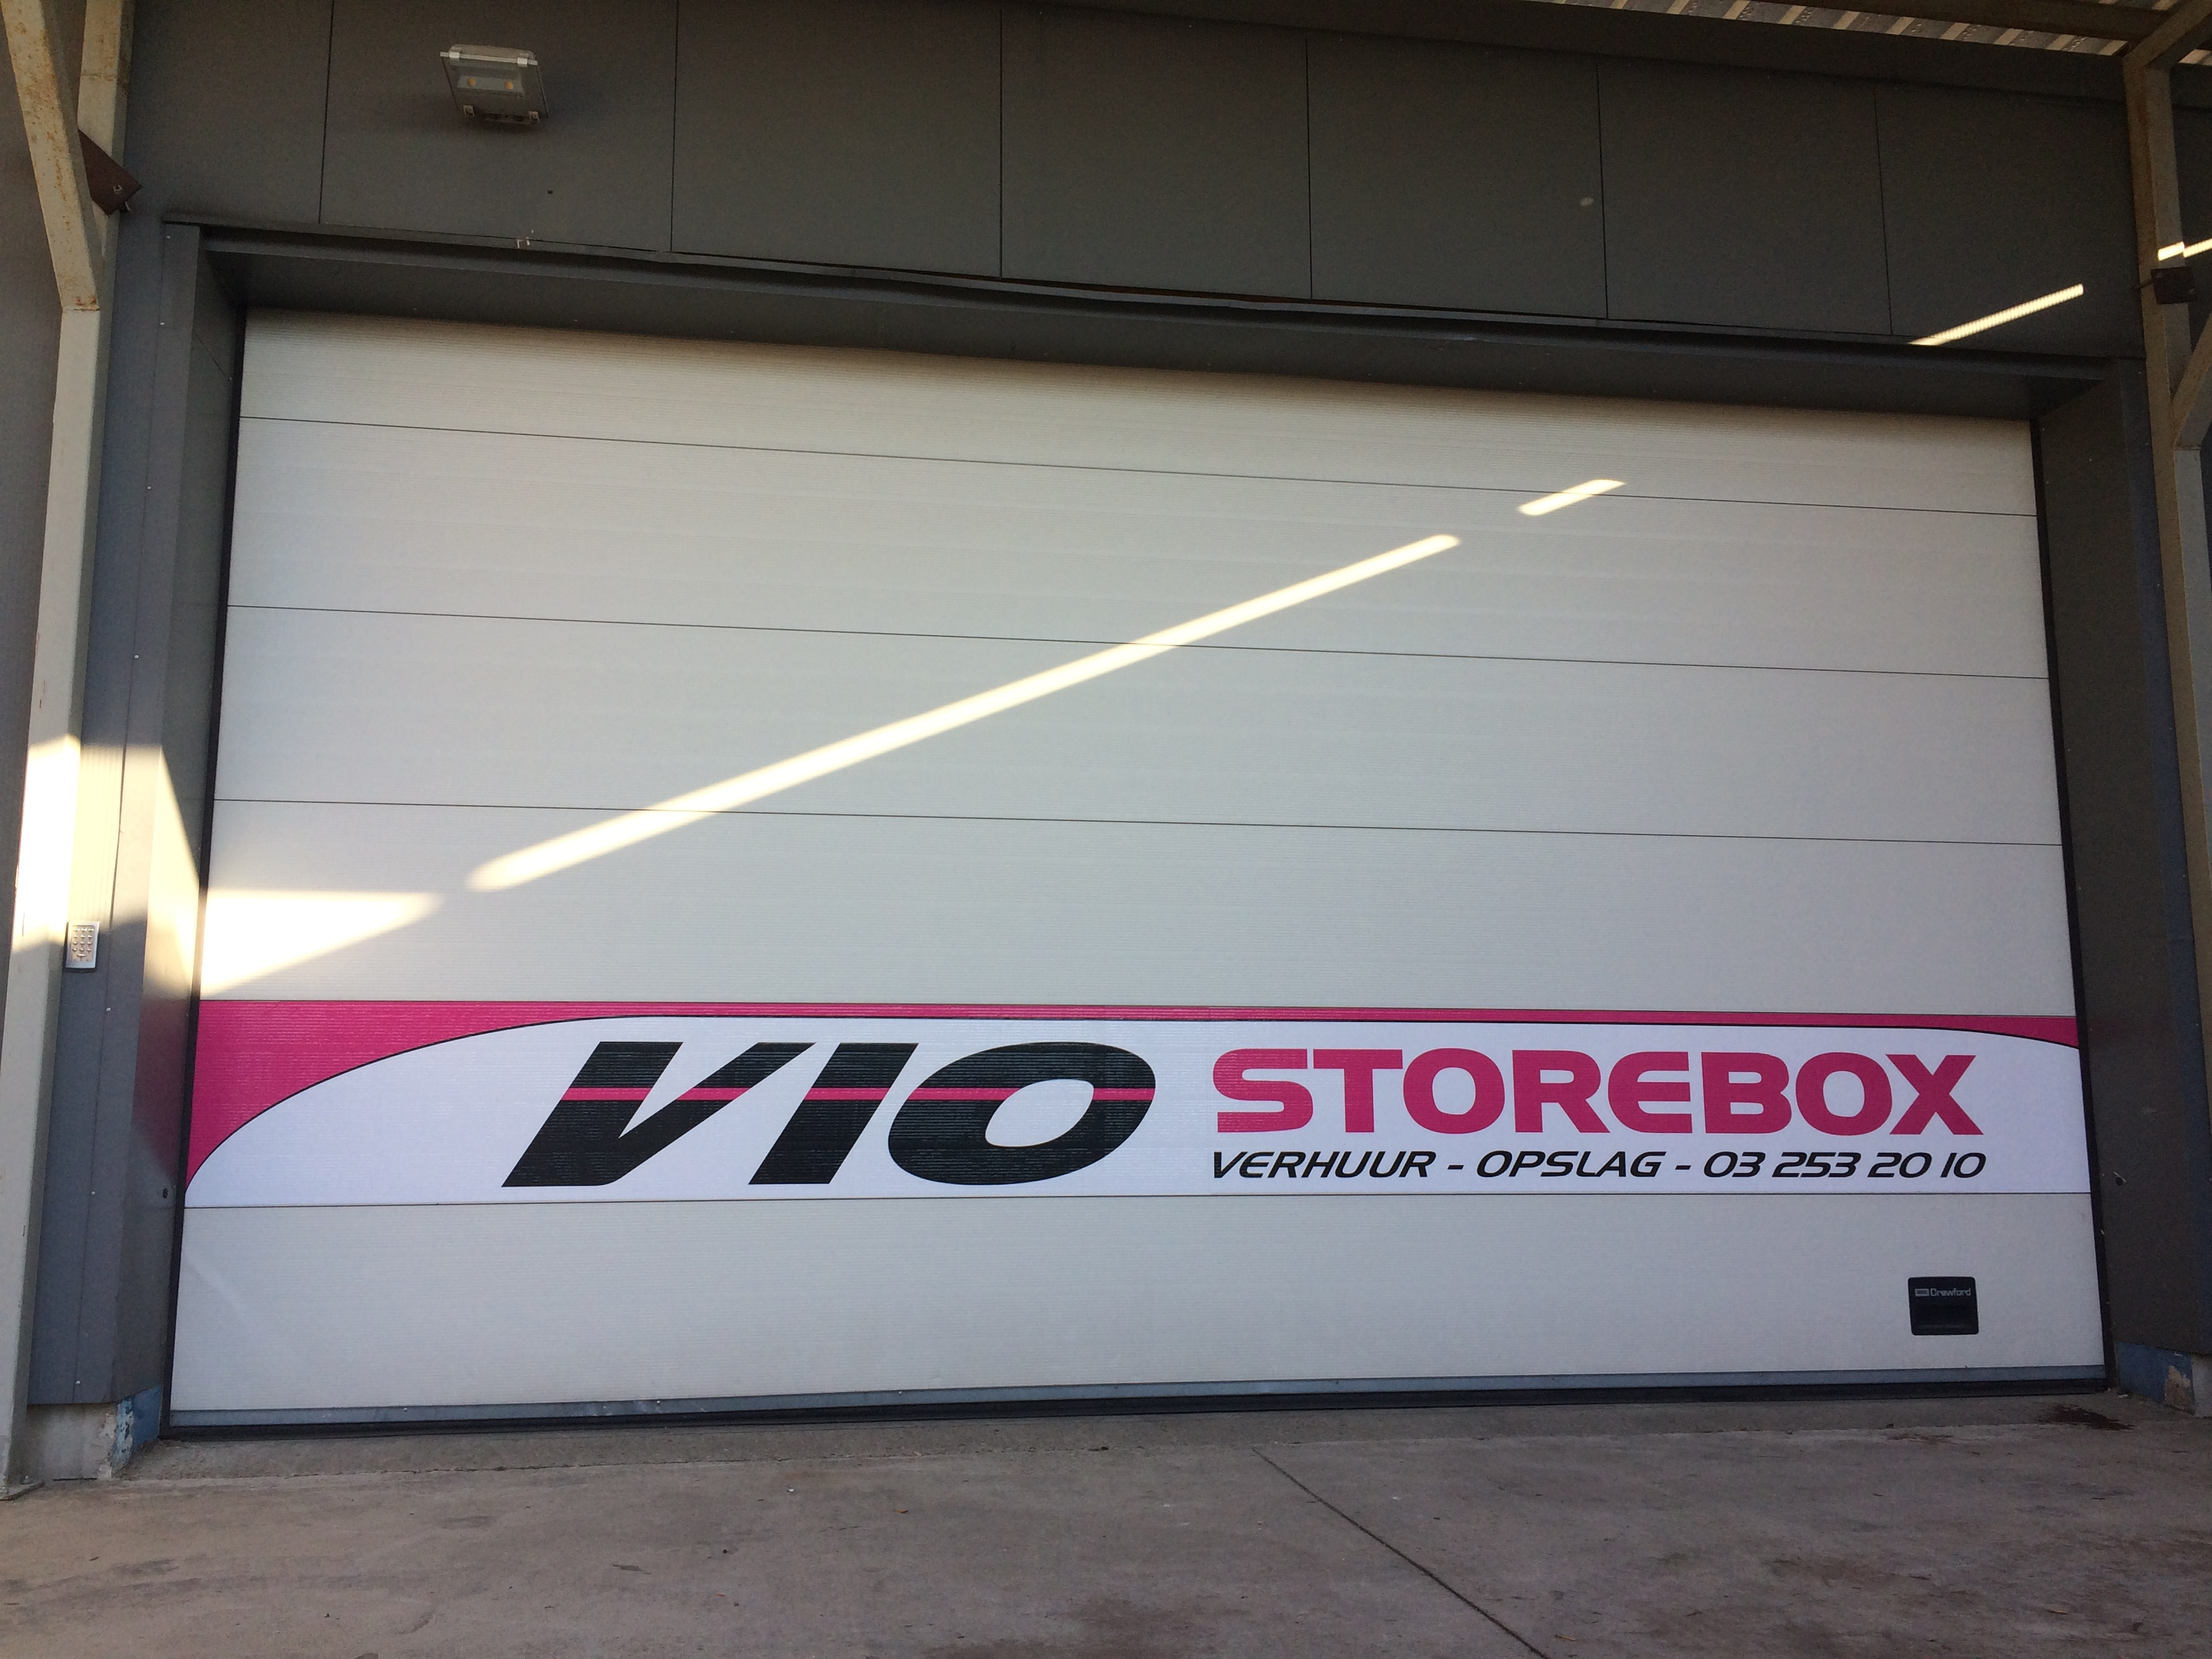 VIO STOREBOX Sint-Niklaas